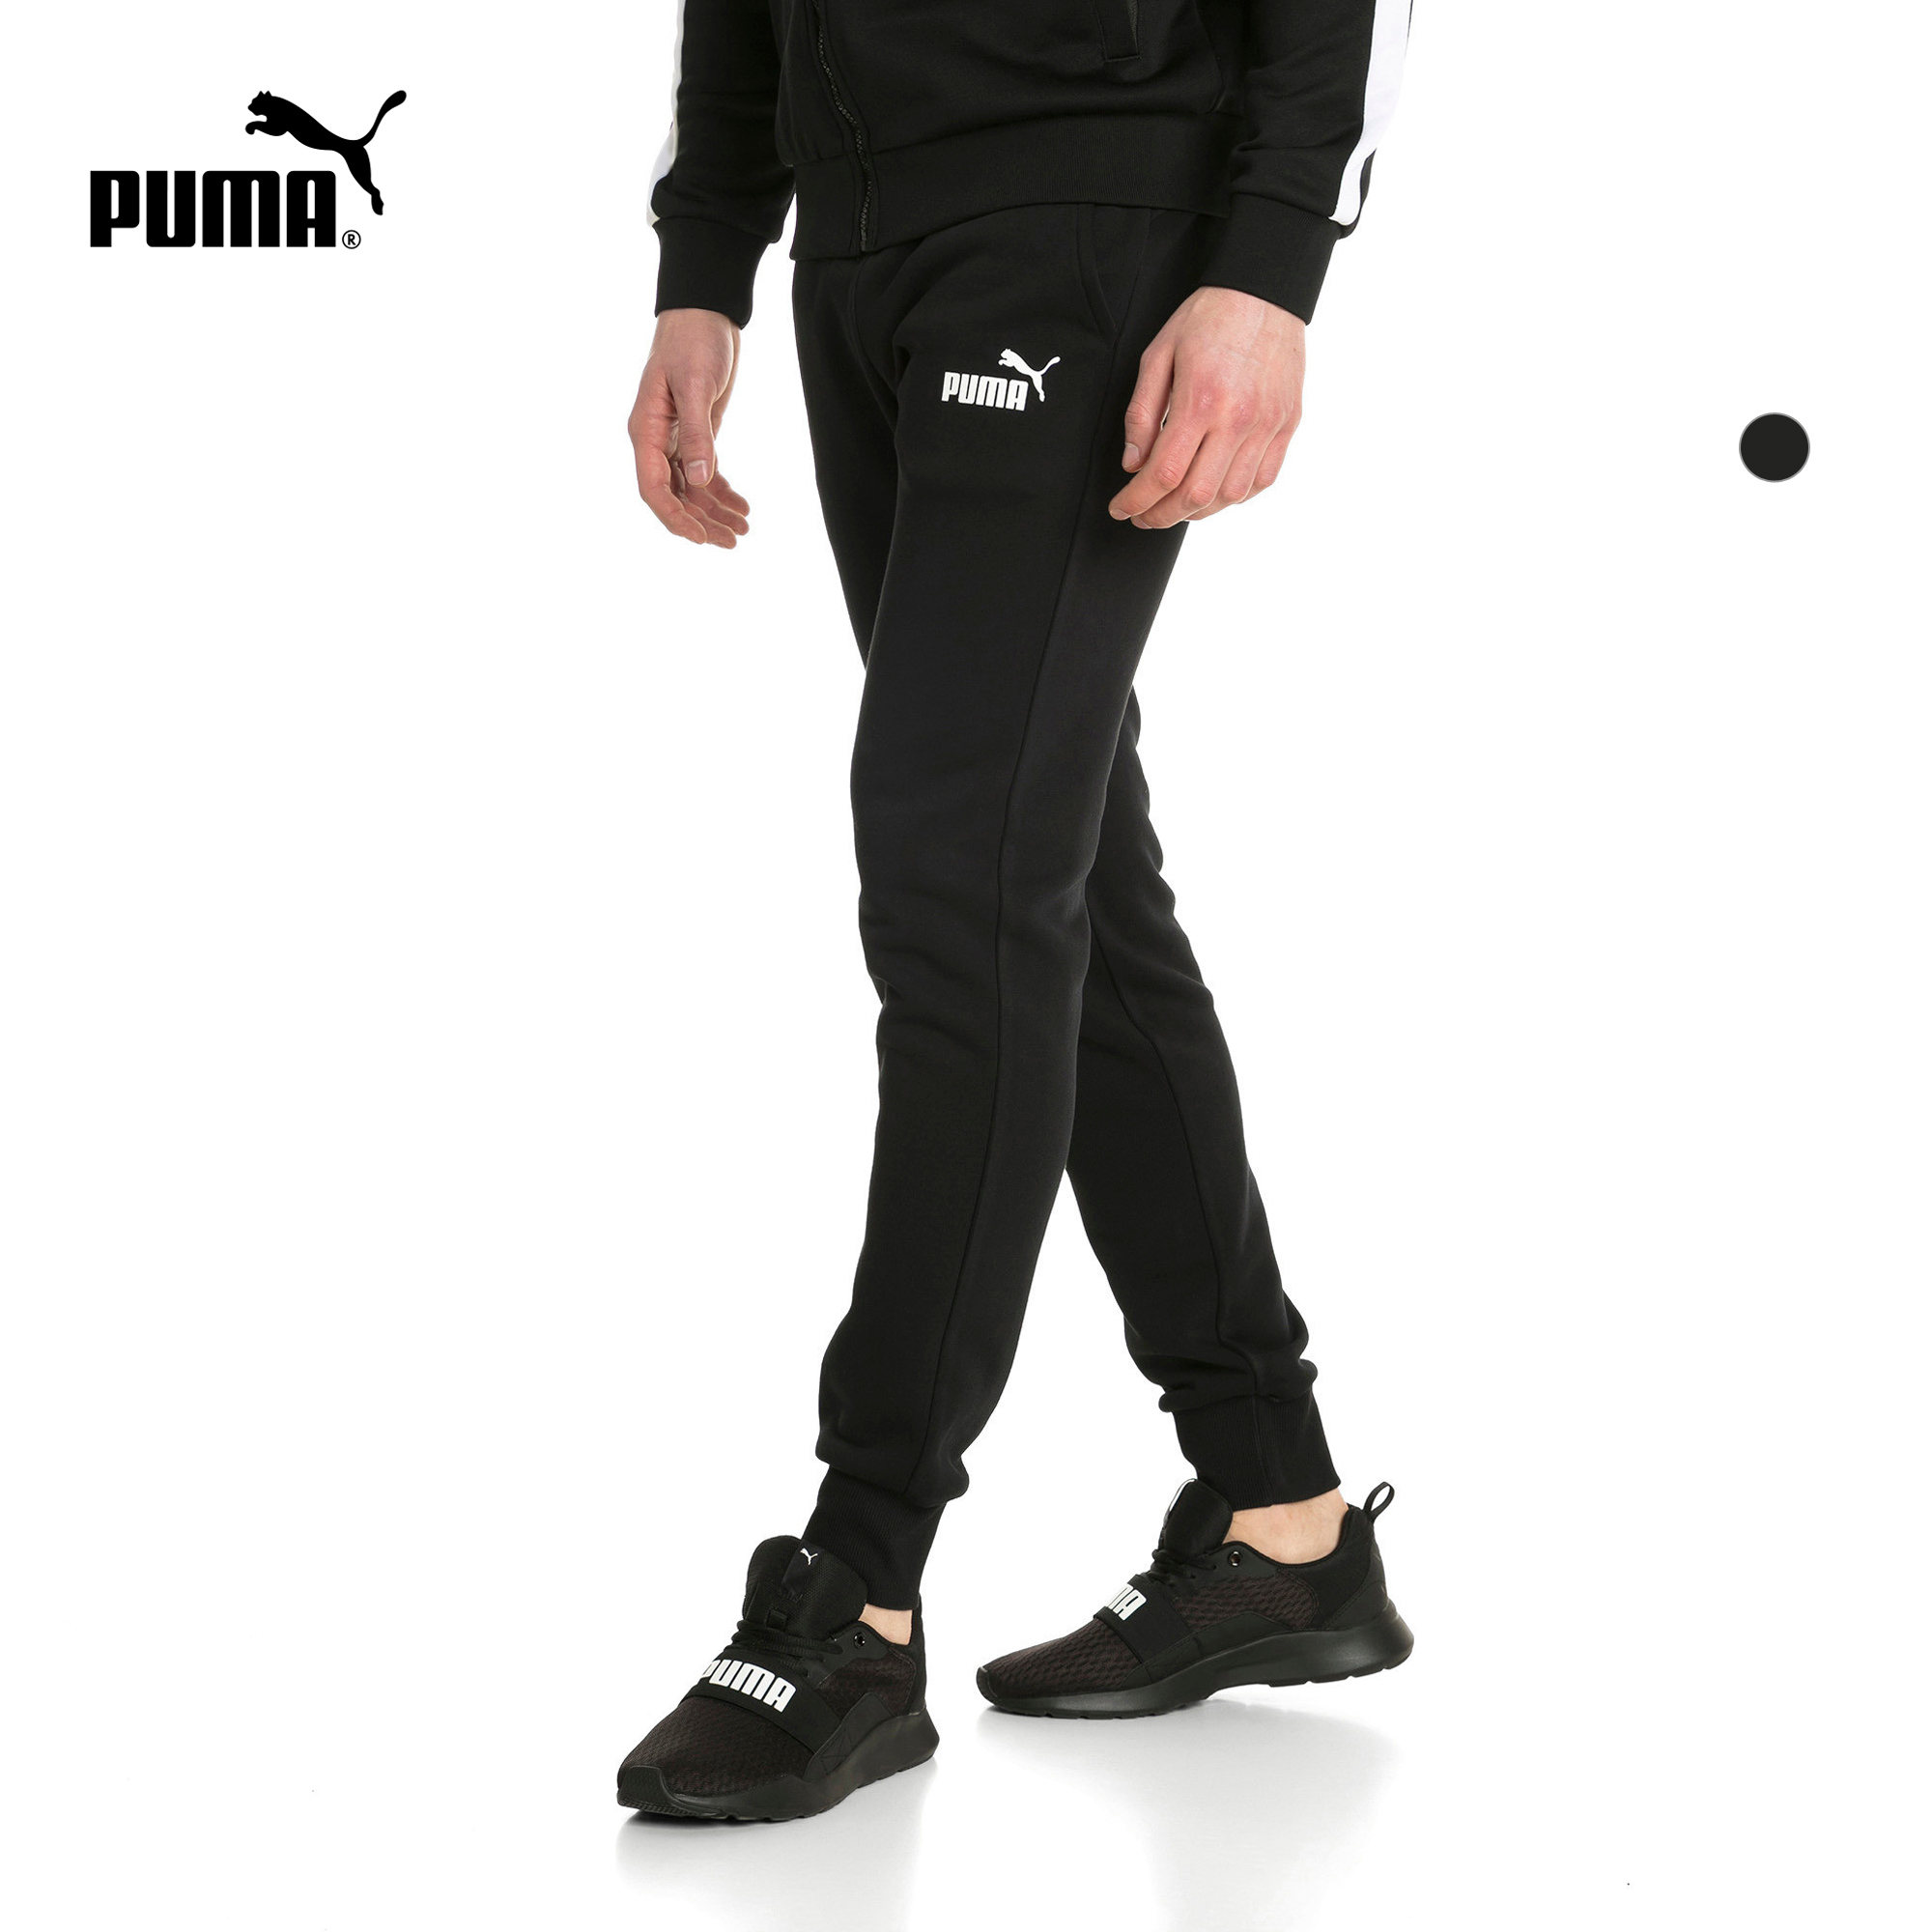 PUMA Hummer official authentic new men's classic casual printed trousers ESS 851753